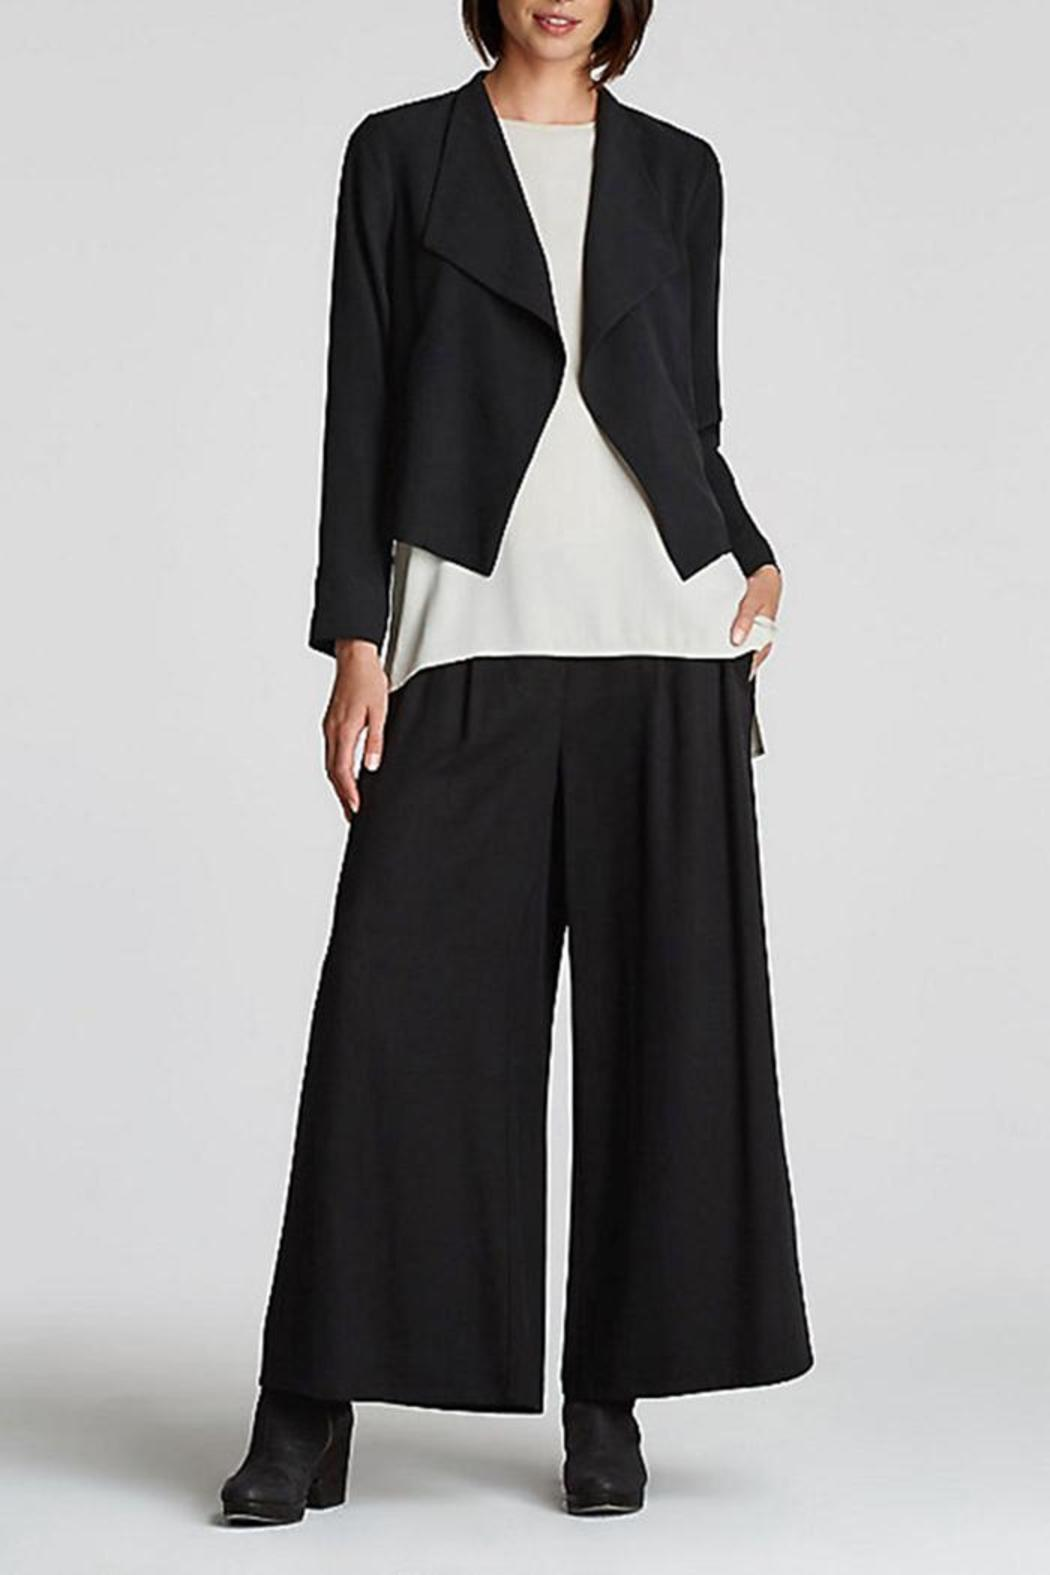 CHECK VELVET TROUSERS. FORMAL OR CASUAL PANTS FOR WOMEN. A pair of pants for every woman's style. Wide legged and comfortable pieces or skinny fits. Appliques, masculine cuts and original prints are key this season. WIDE LEG ANKLE PANTS. BUTTONED WIDE LEG PANTS. COLORS. FLOWY PANTS. JOGGING PANTS WITH BUTTONS. NEW. CULOTTES WITH TIE.